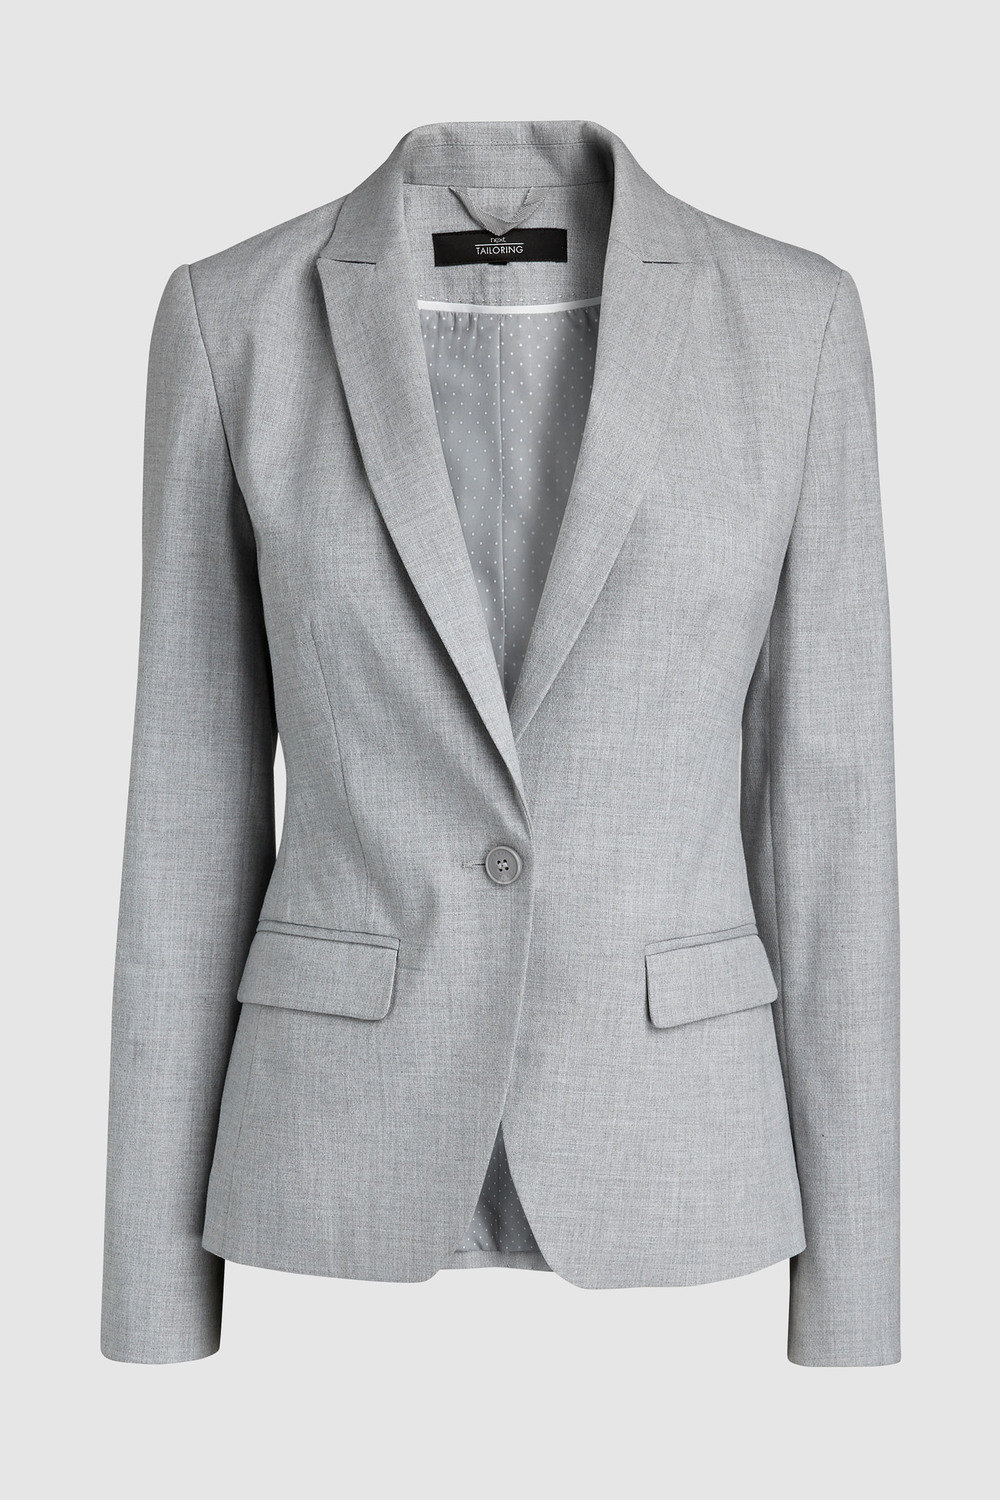 232e0bdfe7aec Next Tailored Fit Single Breasted Suit Jacket-Tall